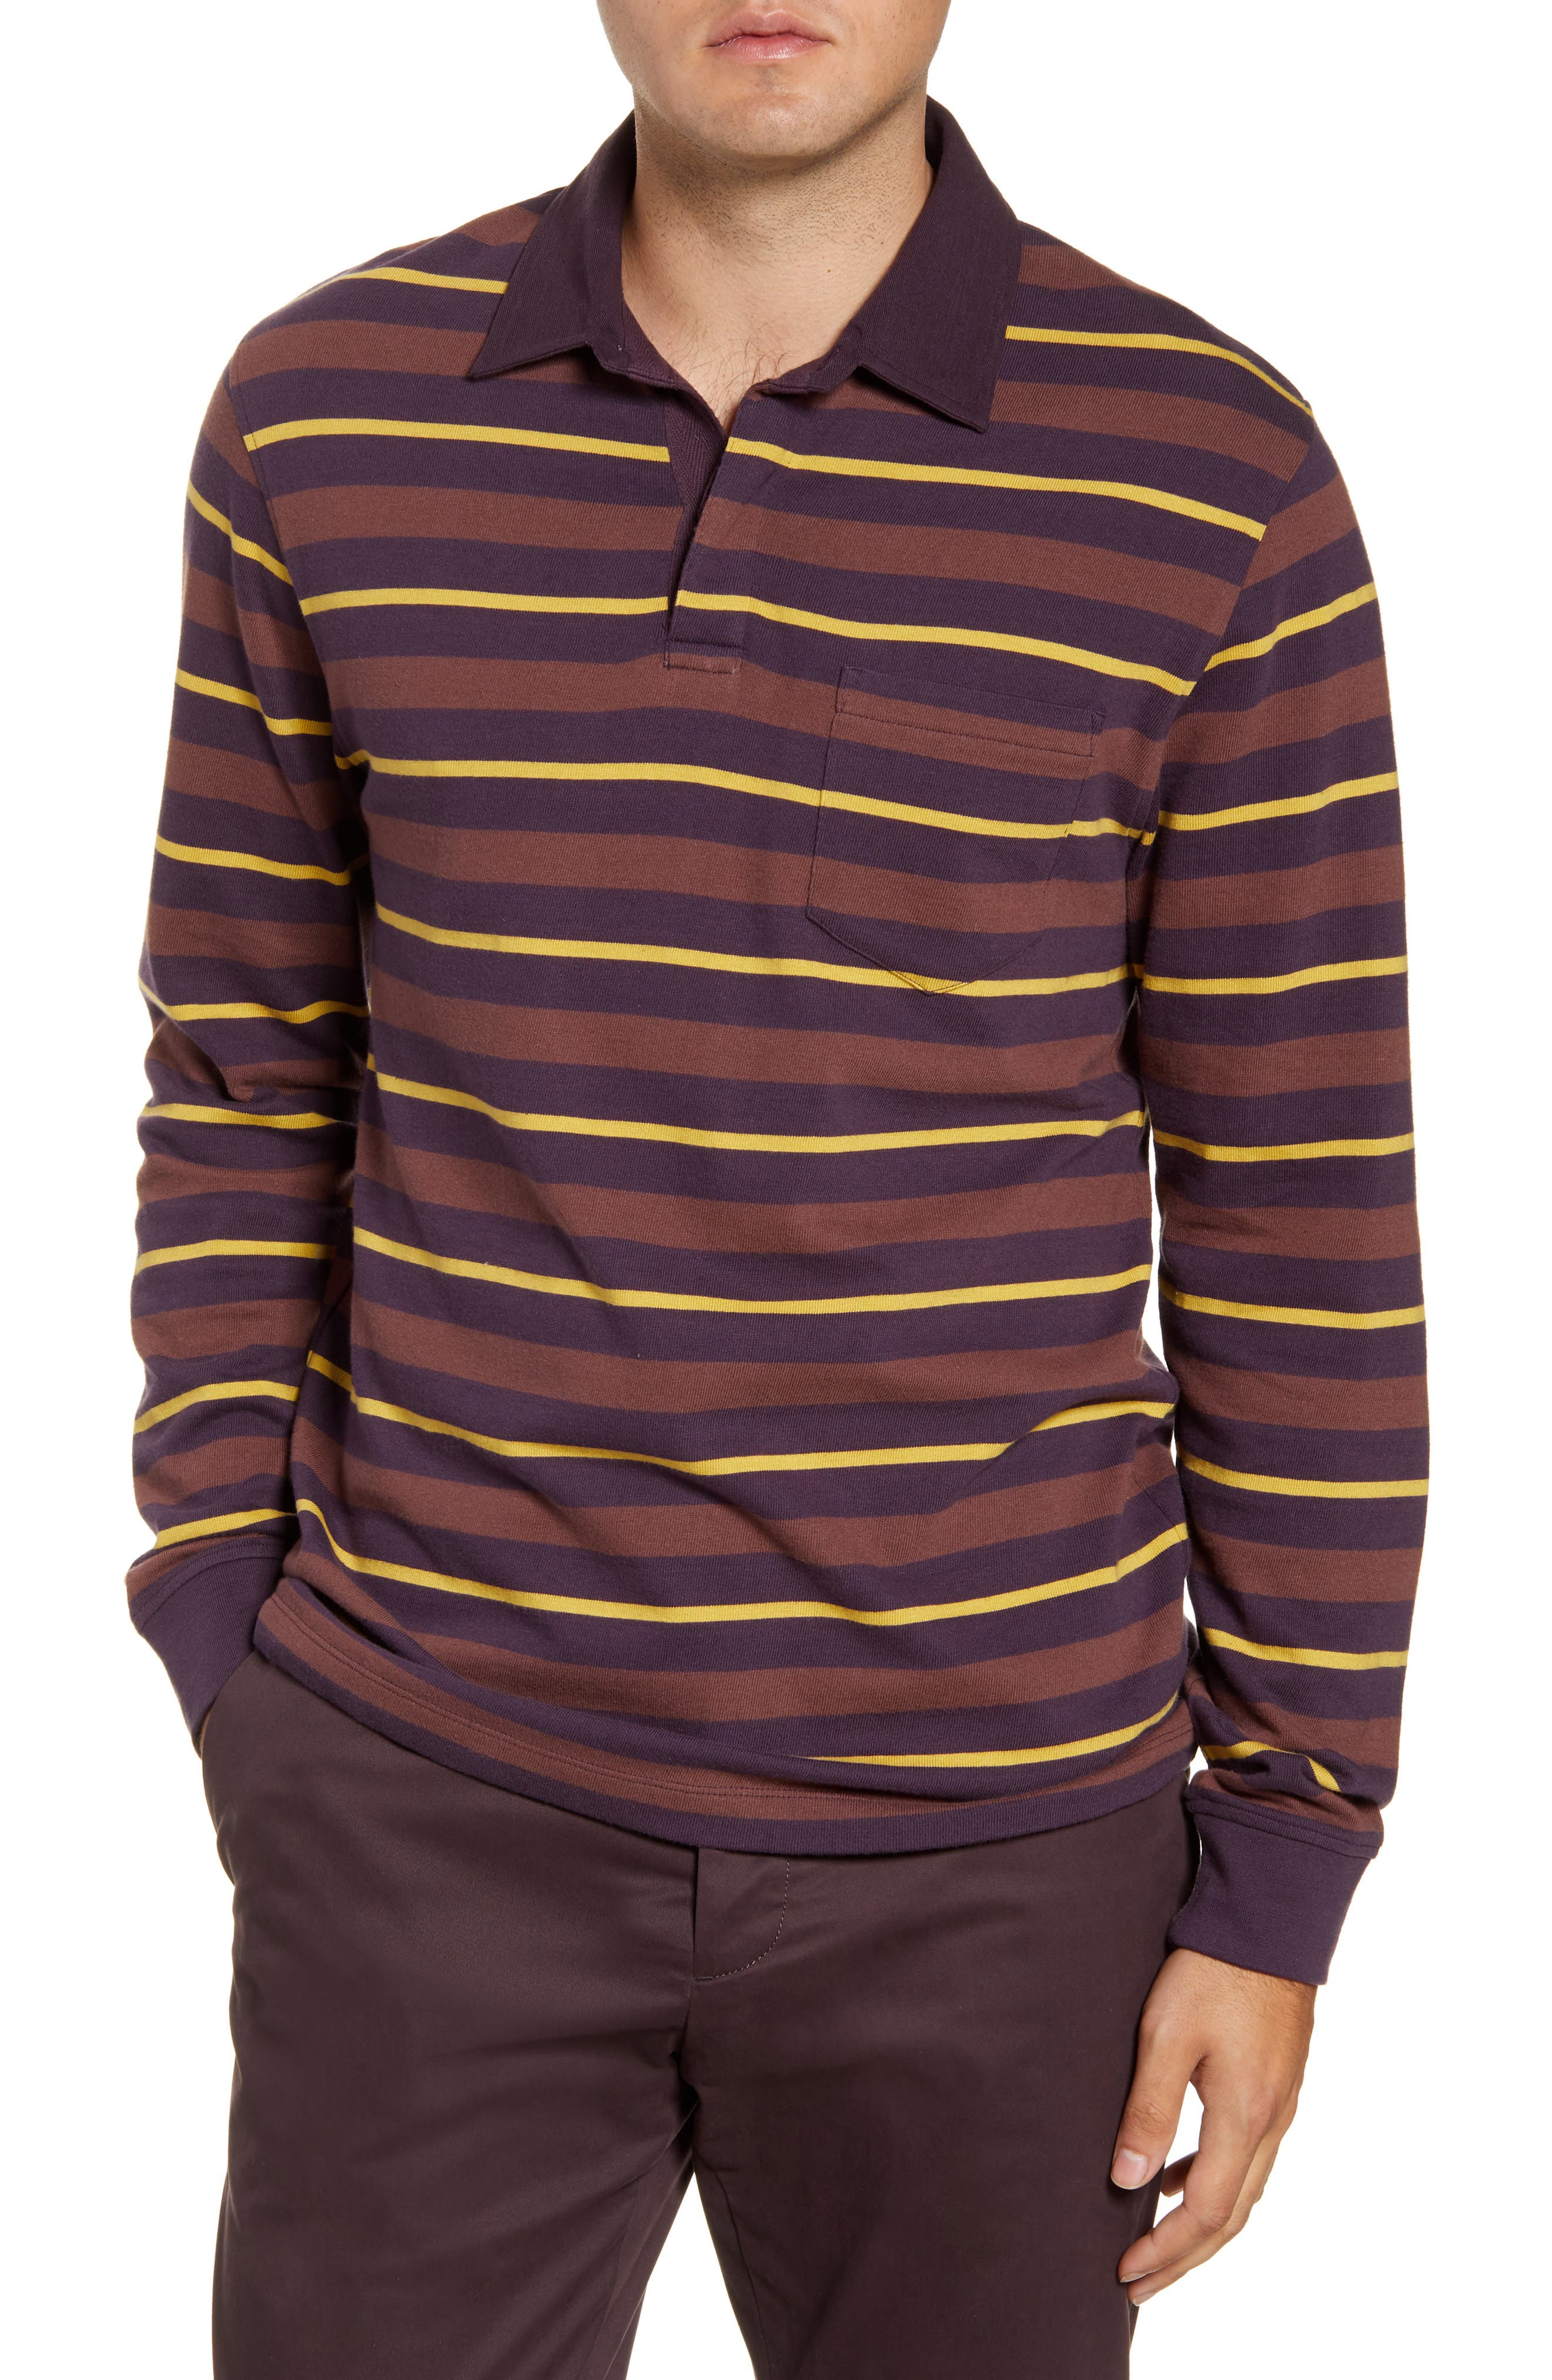 1960s Mens Shirts | 60s Mod Shirts, Hippie Shirts Mens French Connection Rugby Stripe Long Sleeve Pocket Polo Size X-Small - Purple $52.80 AT vintagedancer.com